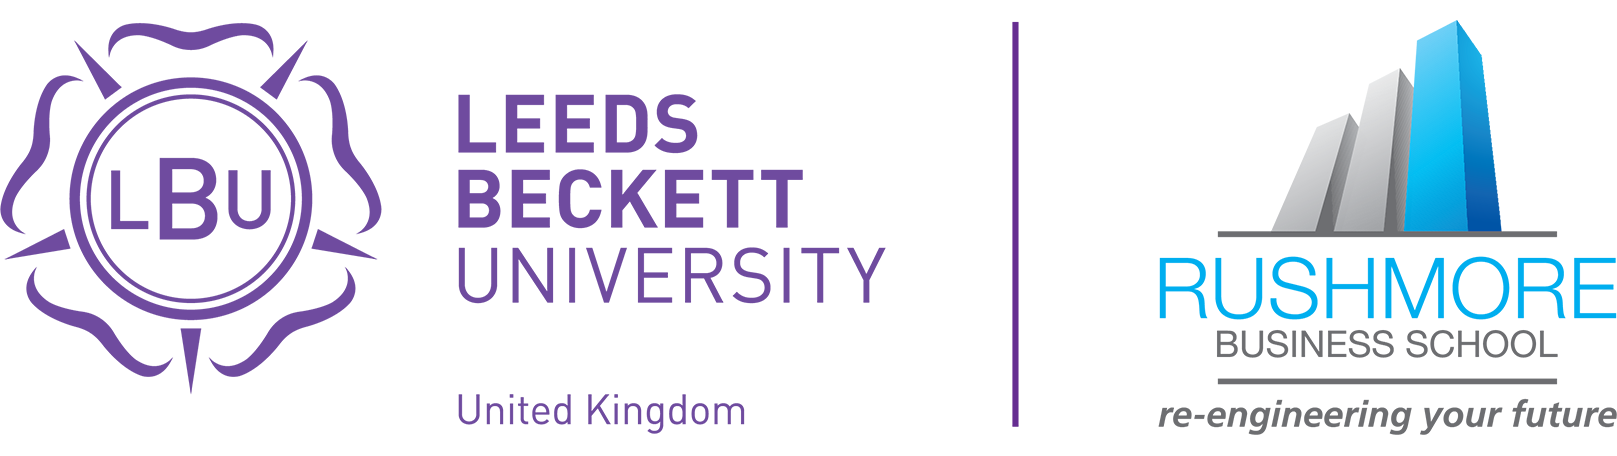 Joint Leeds Beckett and Rushmore Business School logo